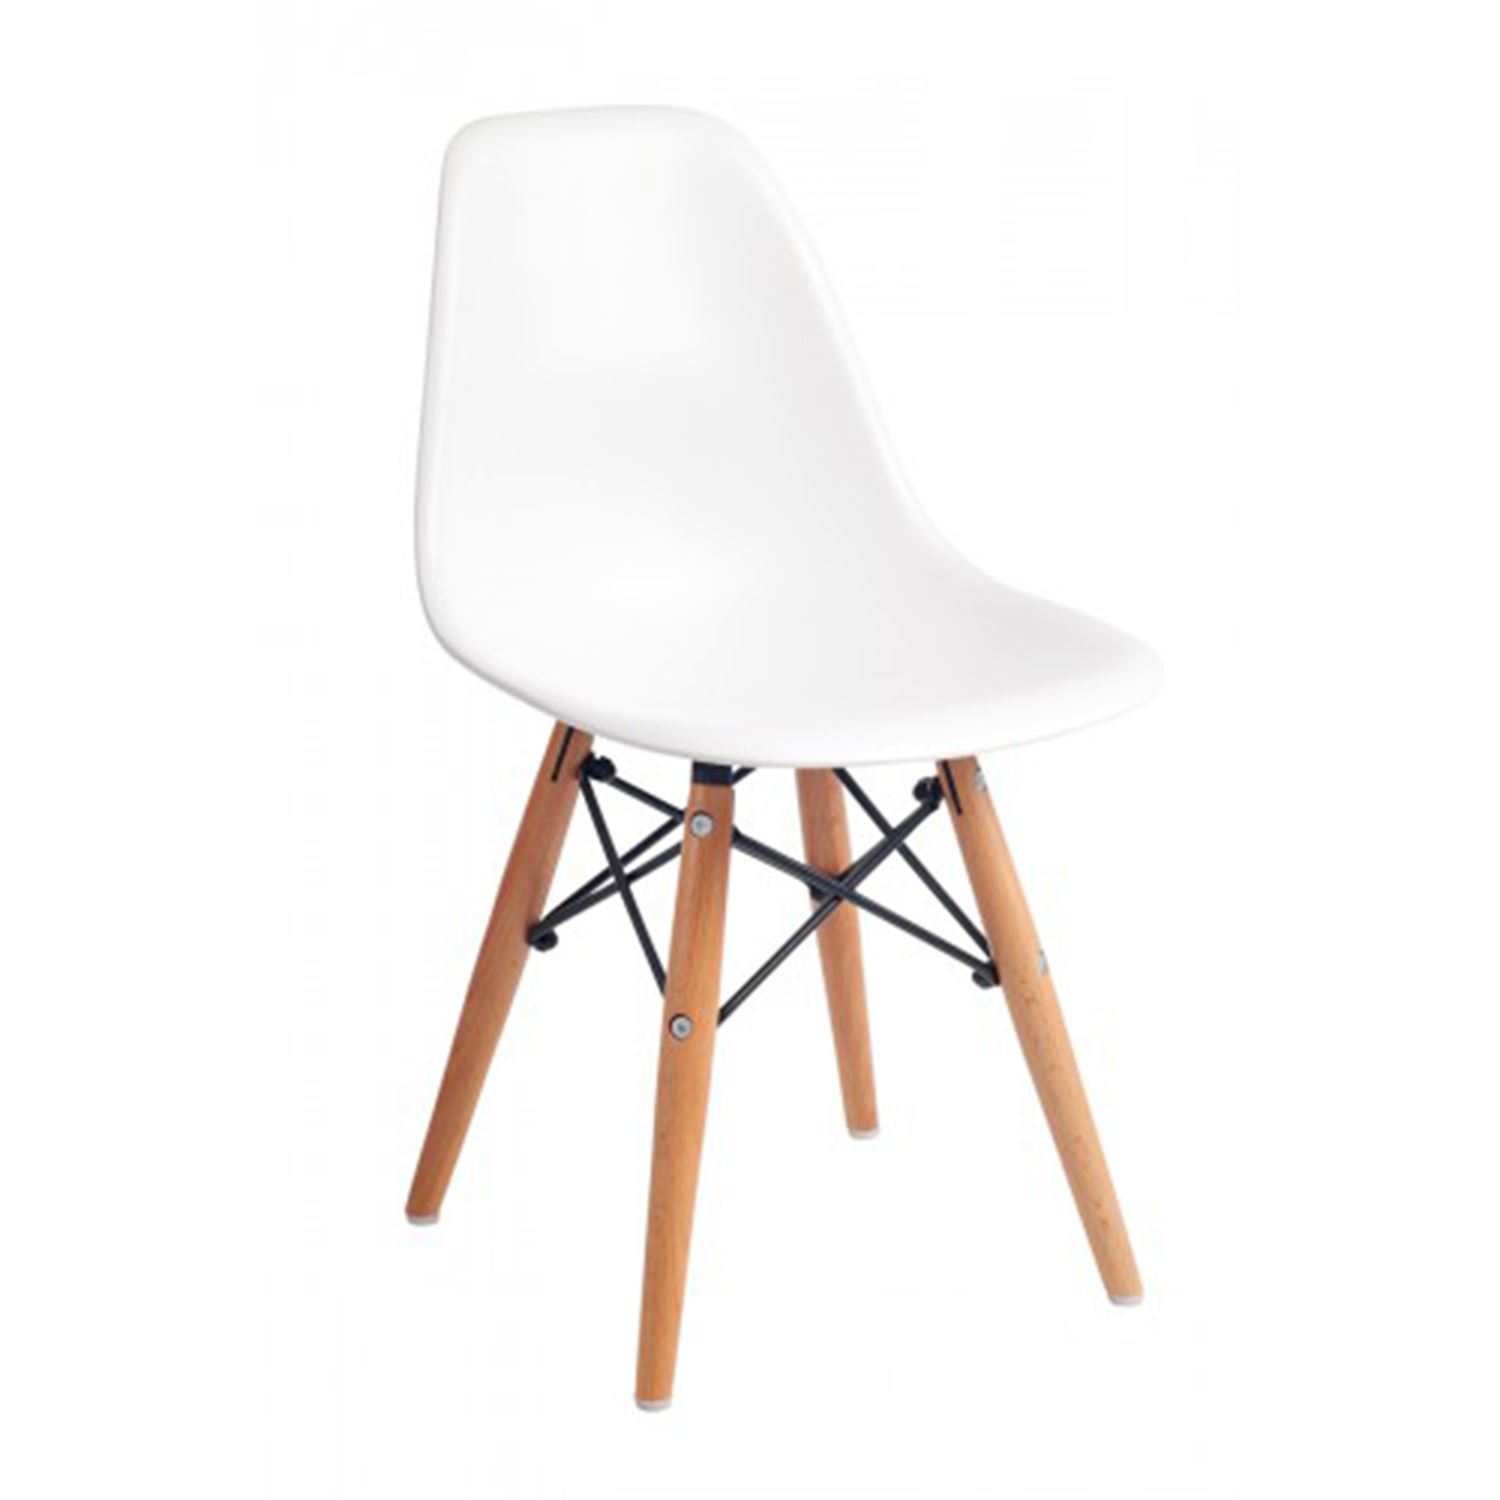 Child Kids Charles Ray Eames Eiffel Inspired Blue White